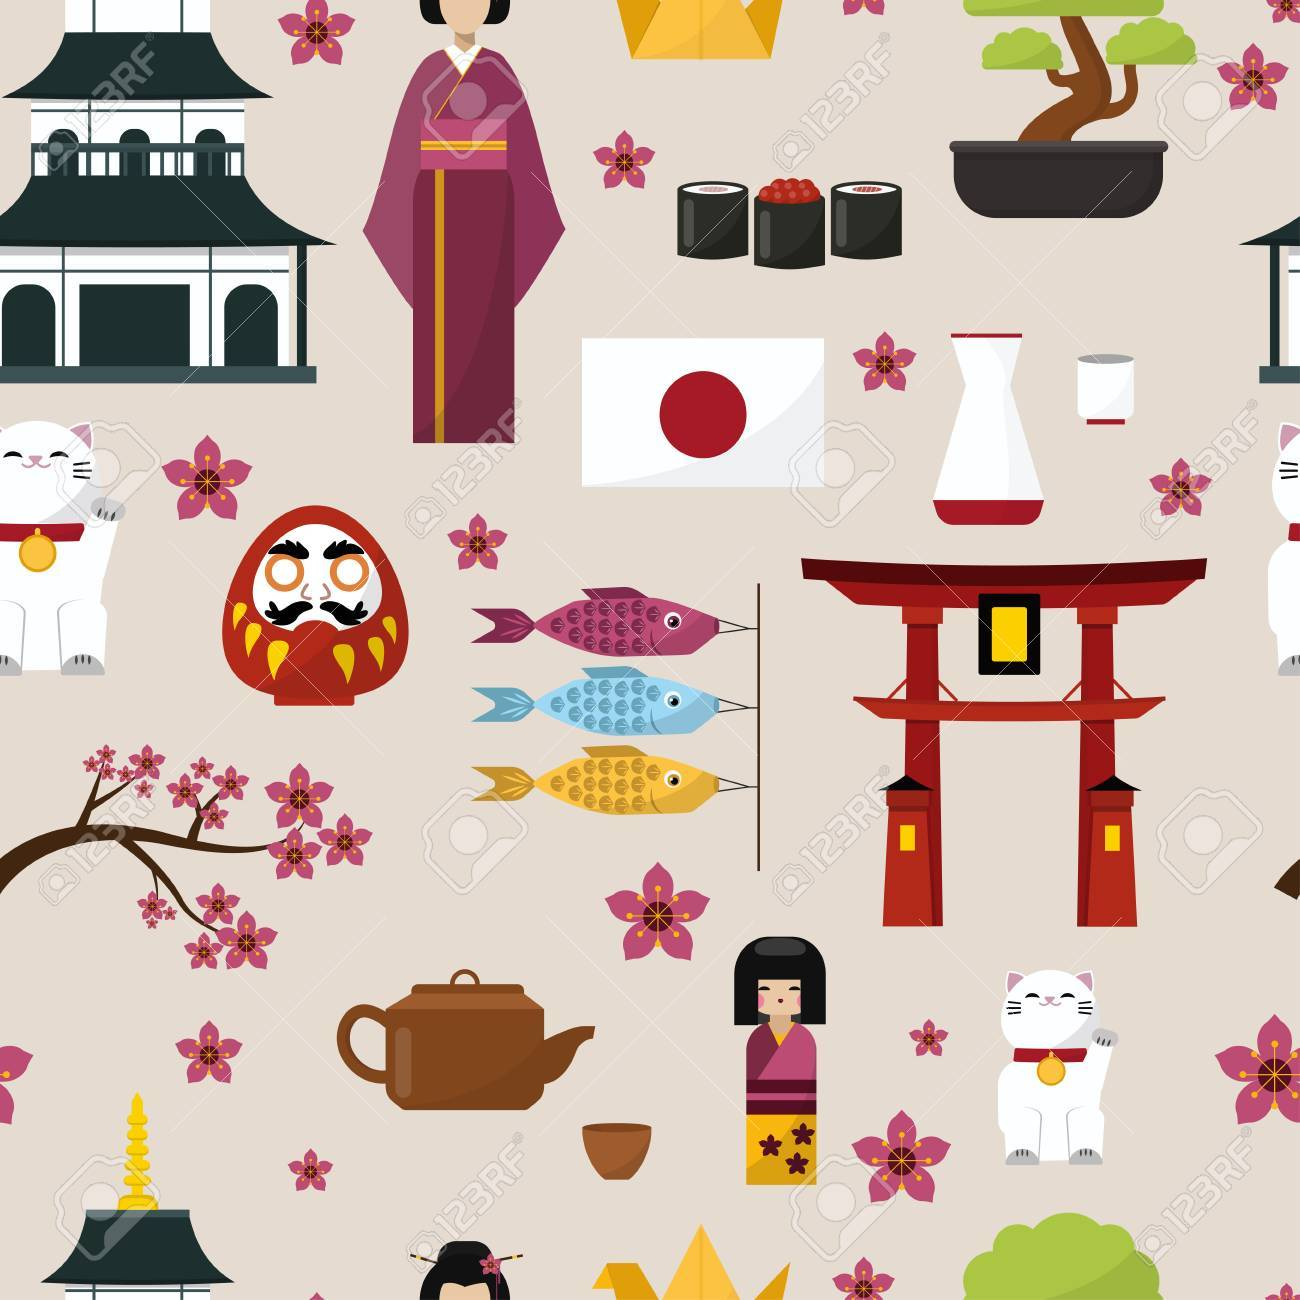 Japan famous culture architecture buildings and japanese traditional food vector icons of travel vacation. - 81127153